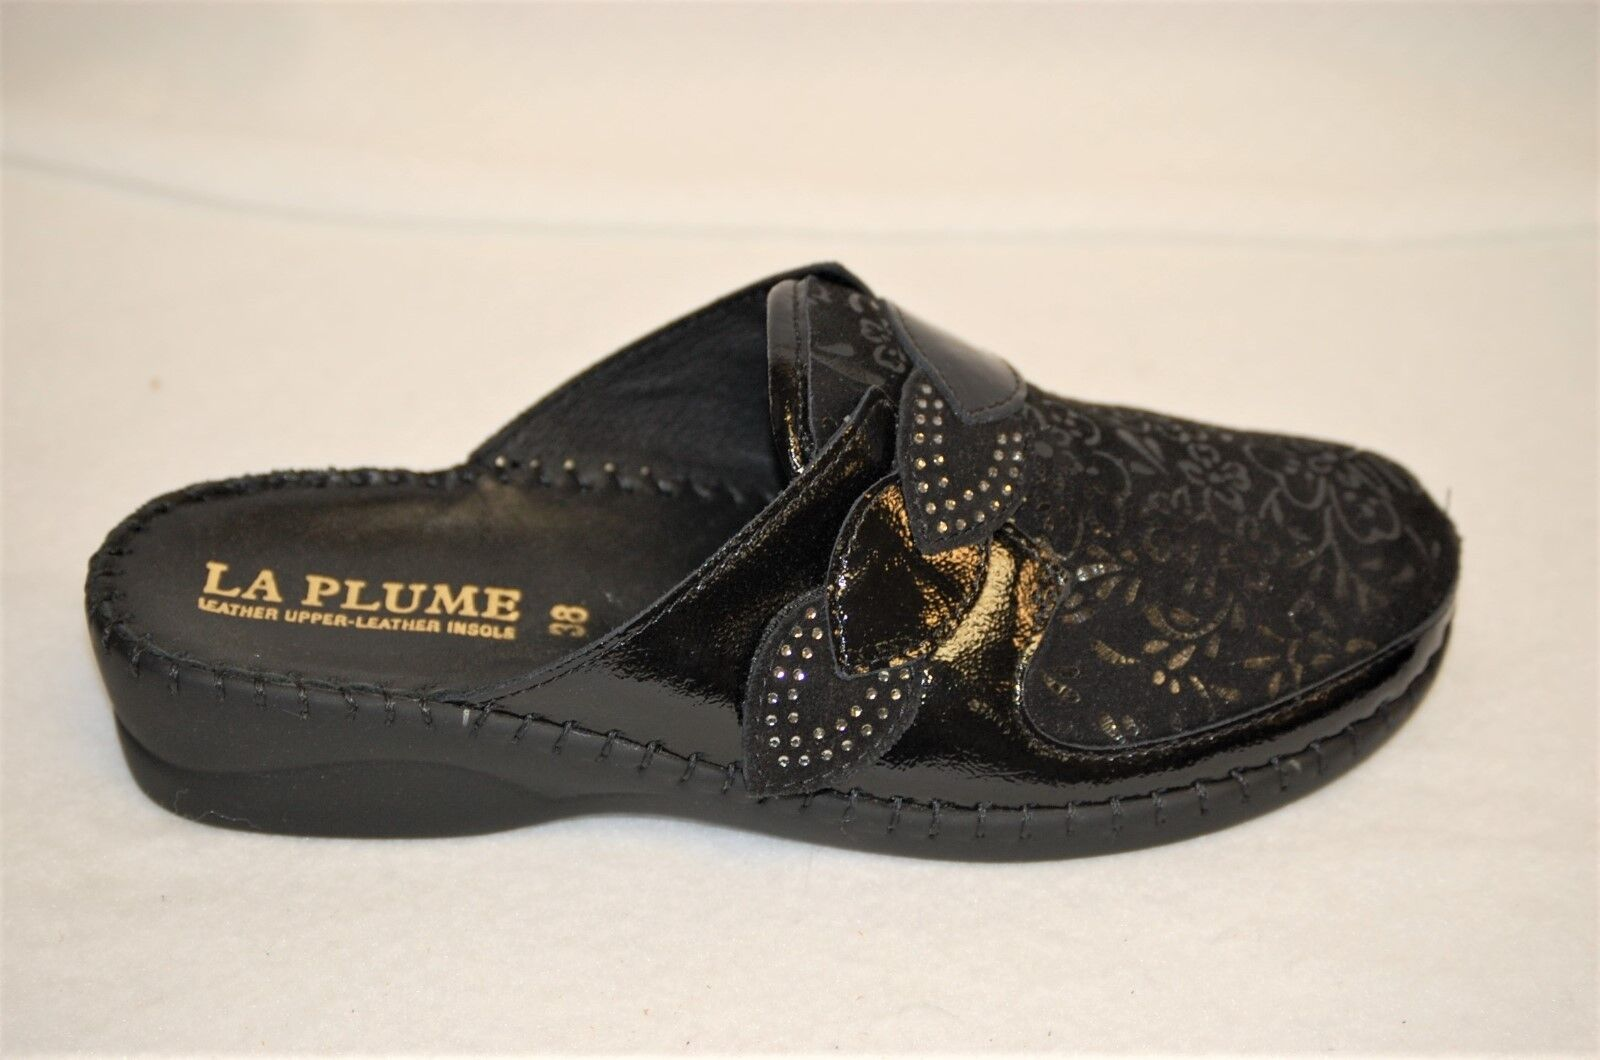 La Plume Garden nero Patent Leather and embossed suede slip on Eur 36